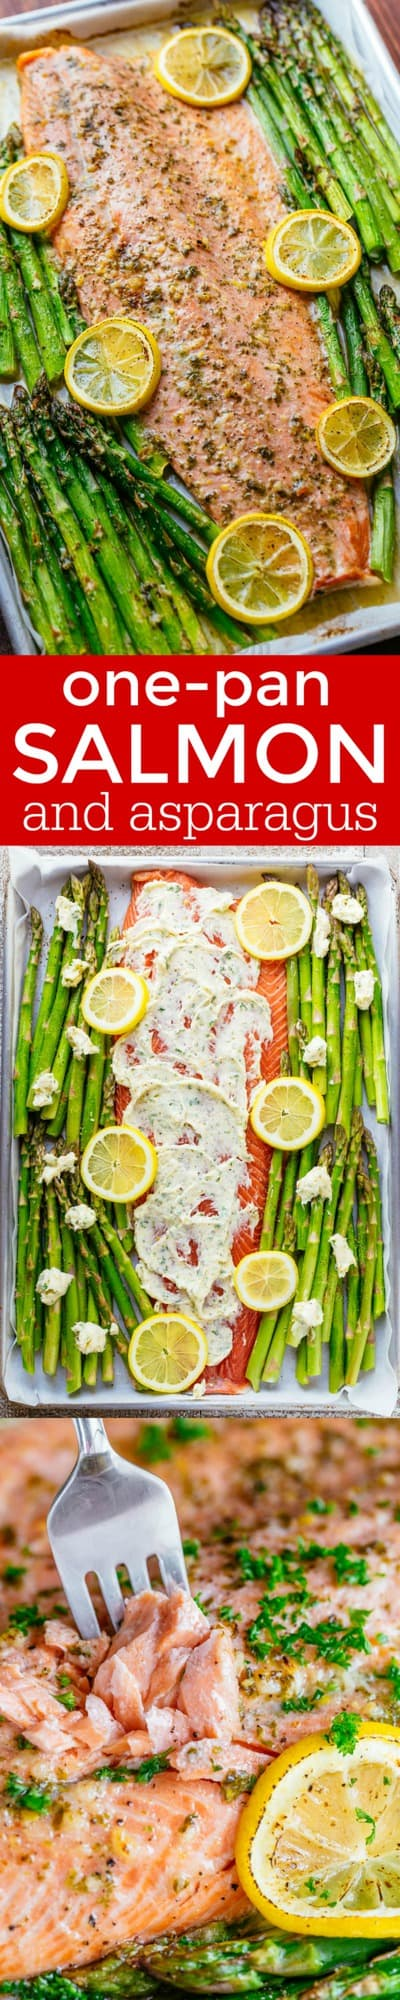 One Pan Salmon And Asparagus With Garlic Herb Butter Is Quick And Easy (25  Minute